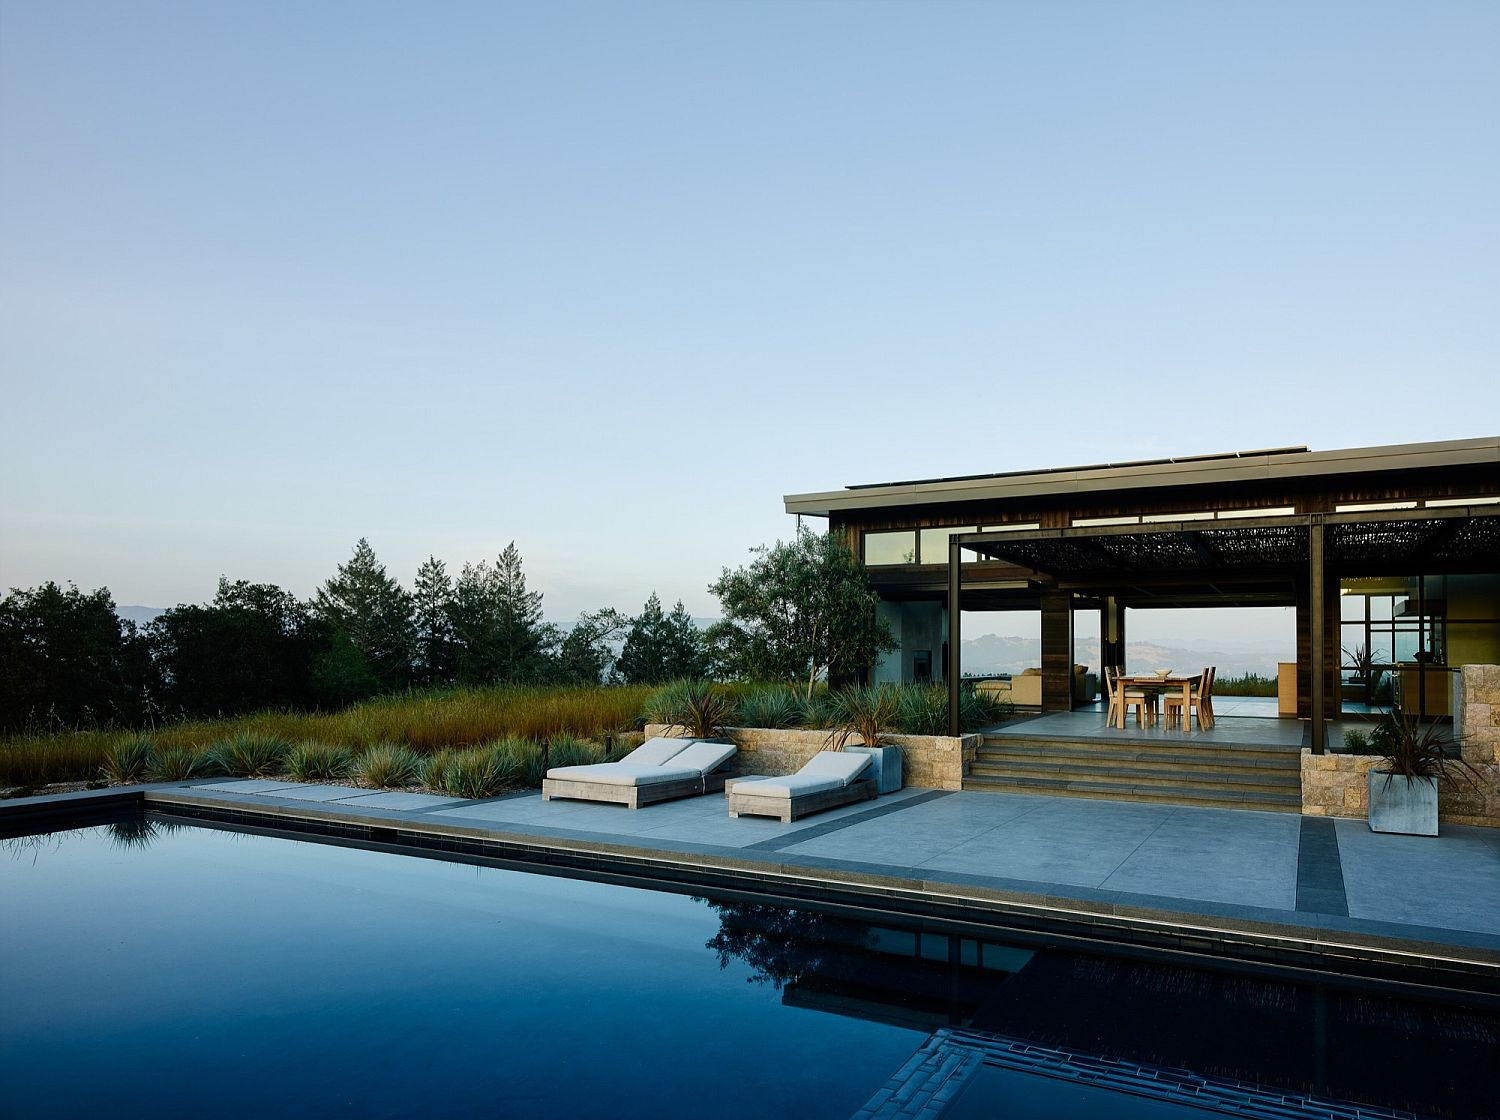 Refreshing pool and outdoor hangout becomes a part of the interior